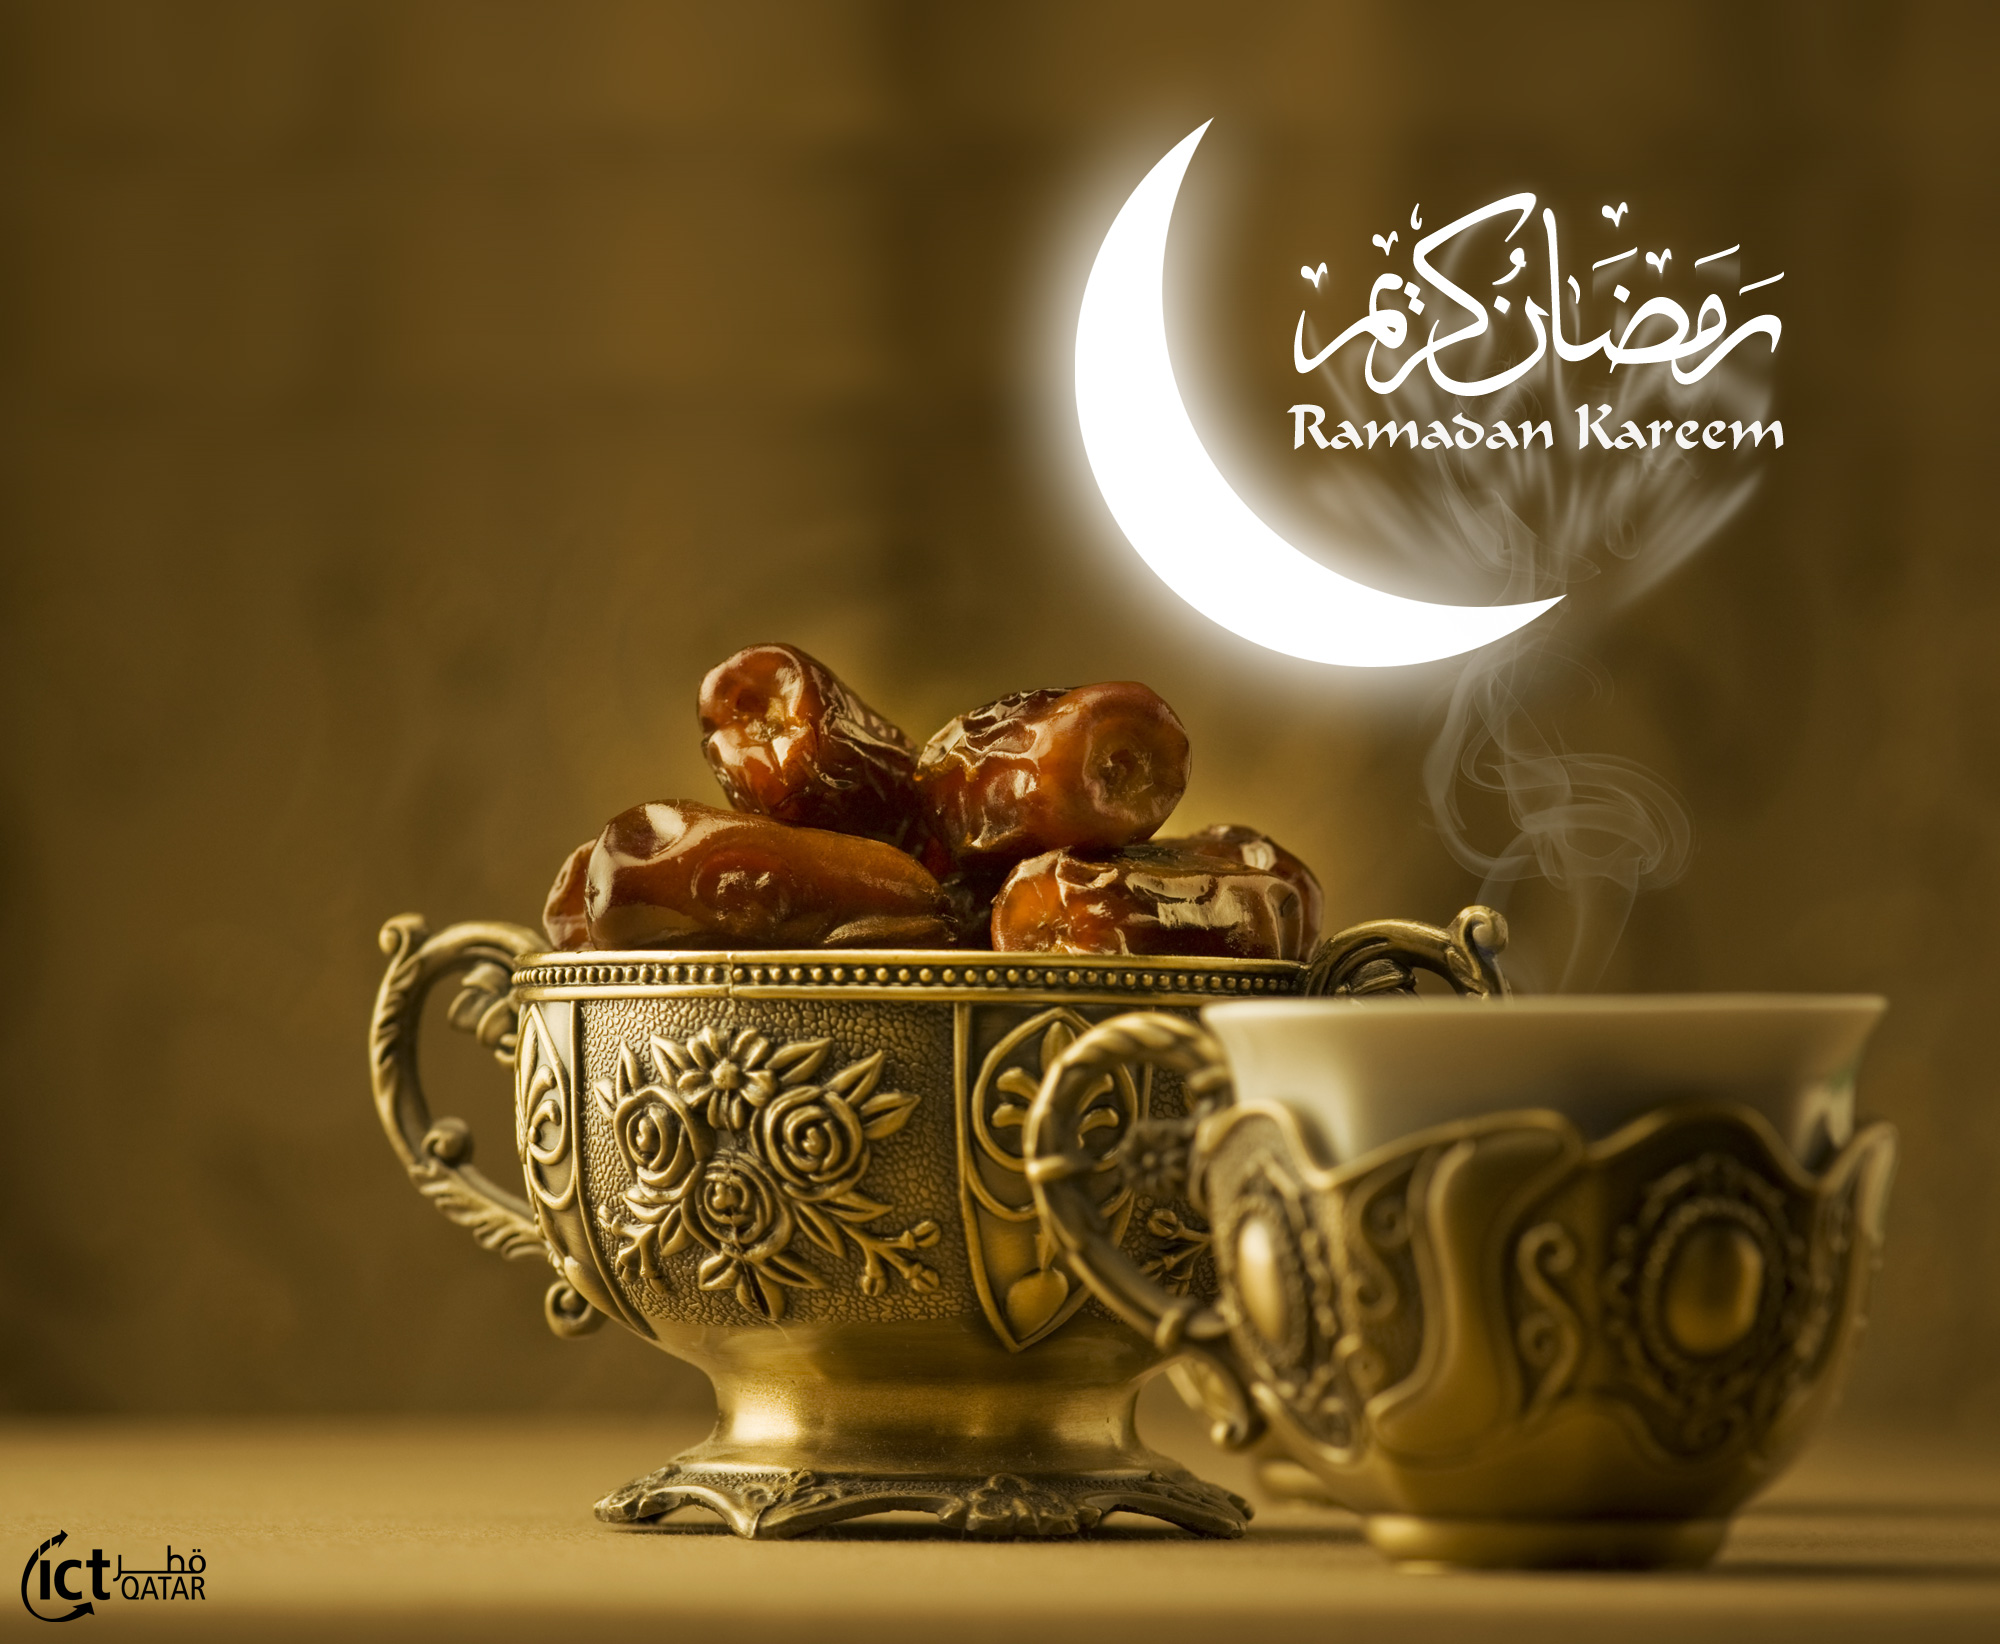 Ramadan Pictures Collection To Set Twitter Facebook Cover Photo